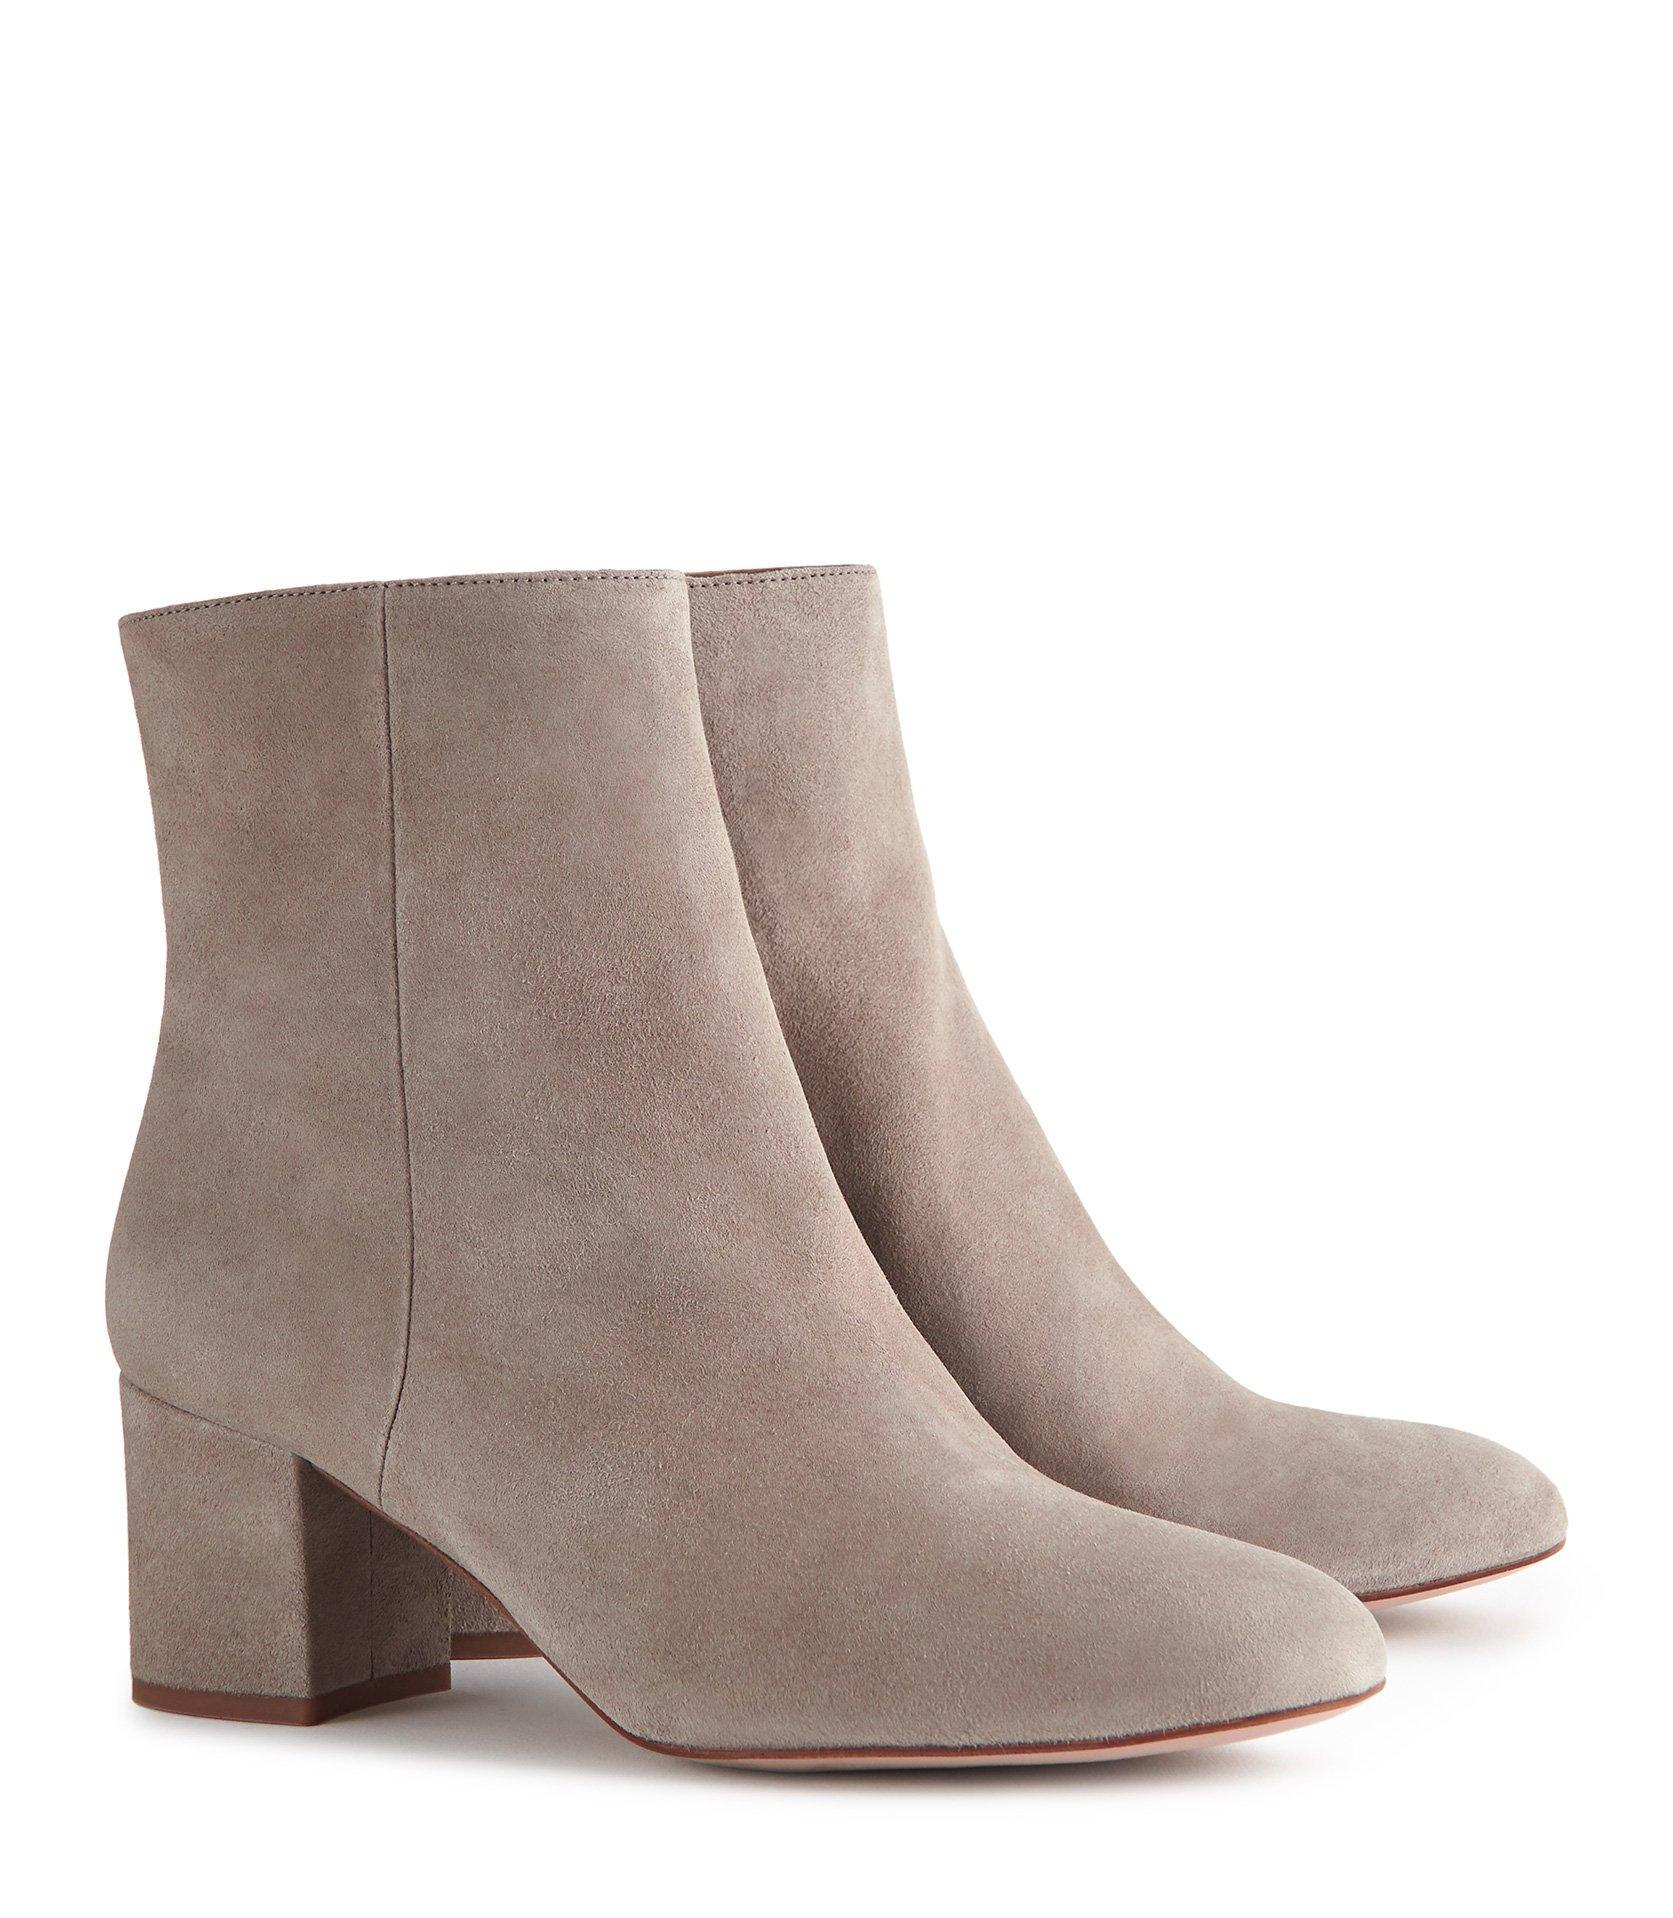 080f5e6614807 Reiss - Gray Delphine - Suede Block Heeled Ankle Boots - Lyst. View  fullscreen